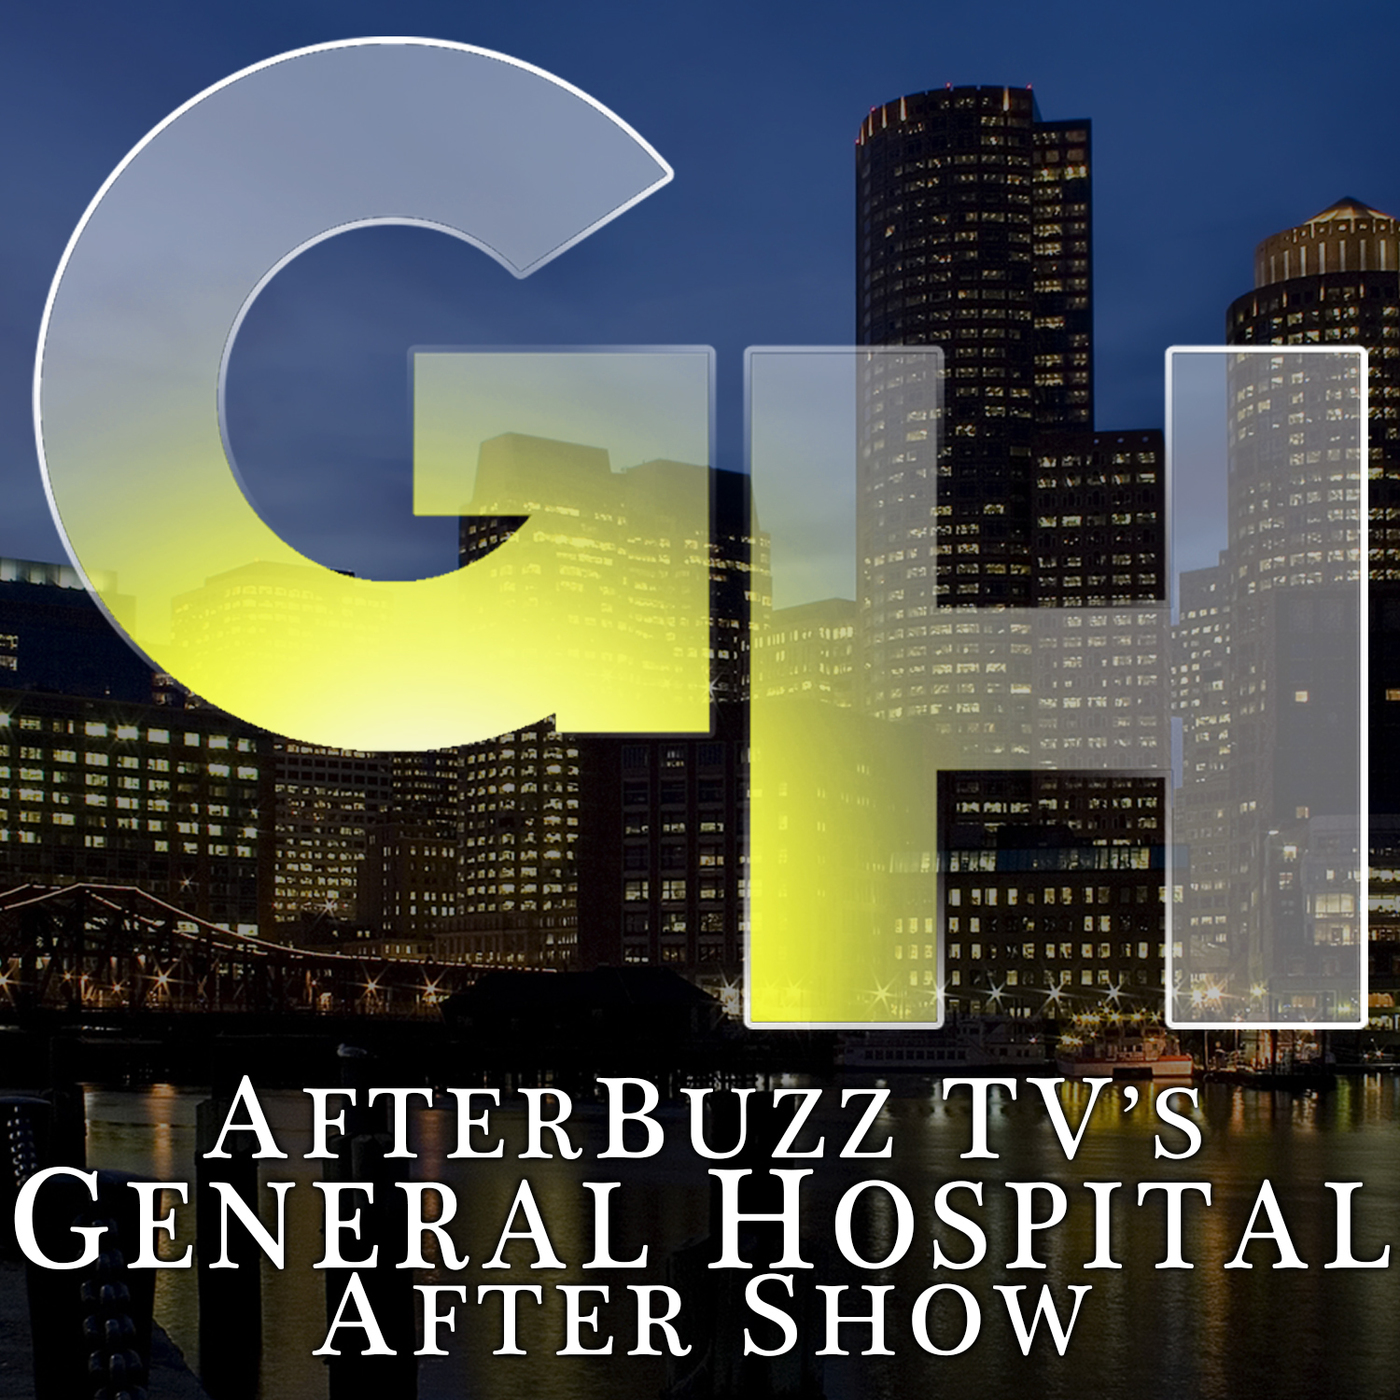 General Hospital AfterBuzz TV AfterShow